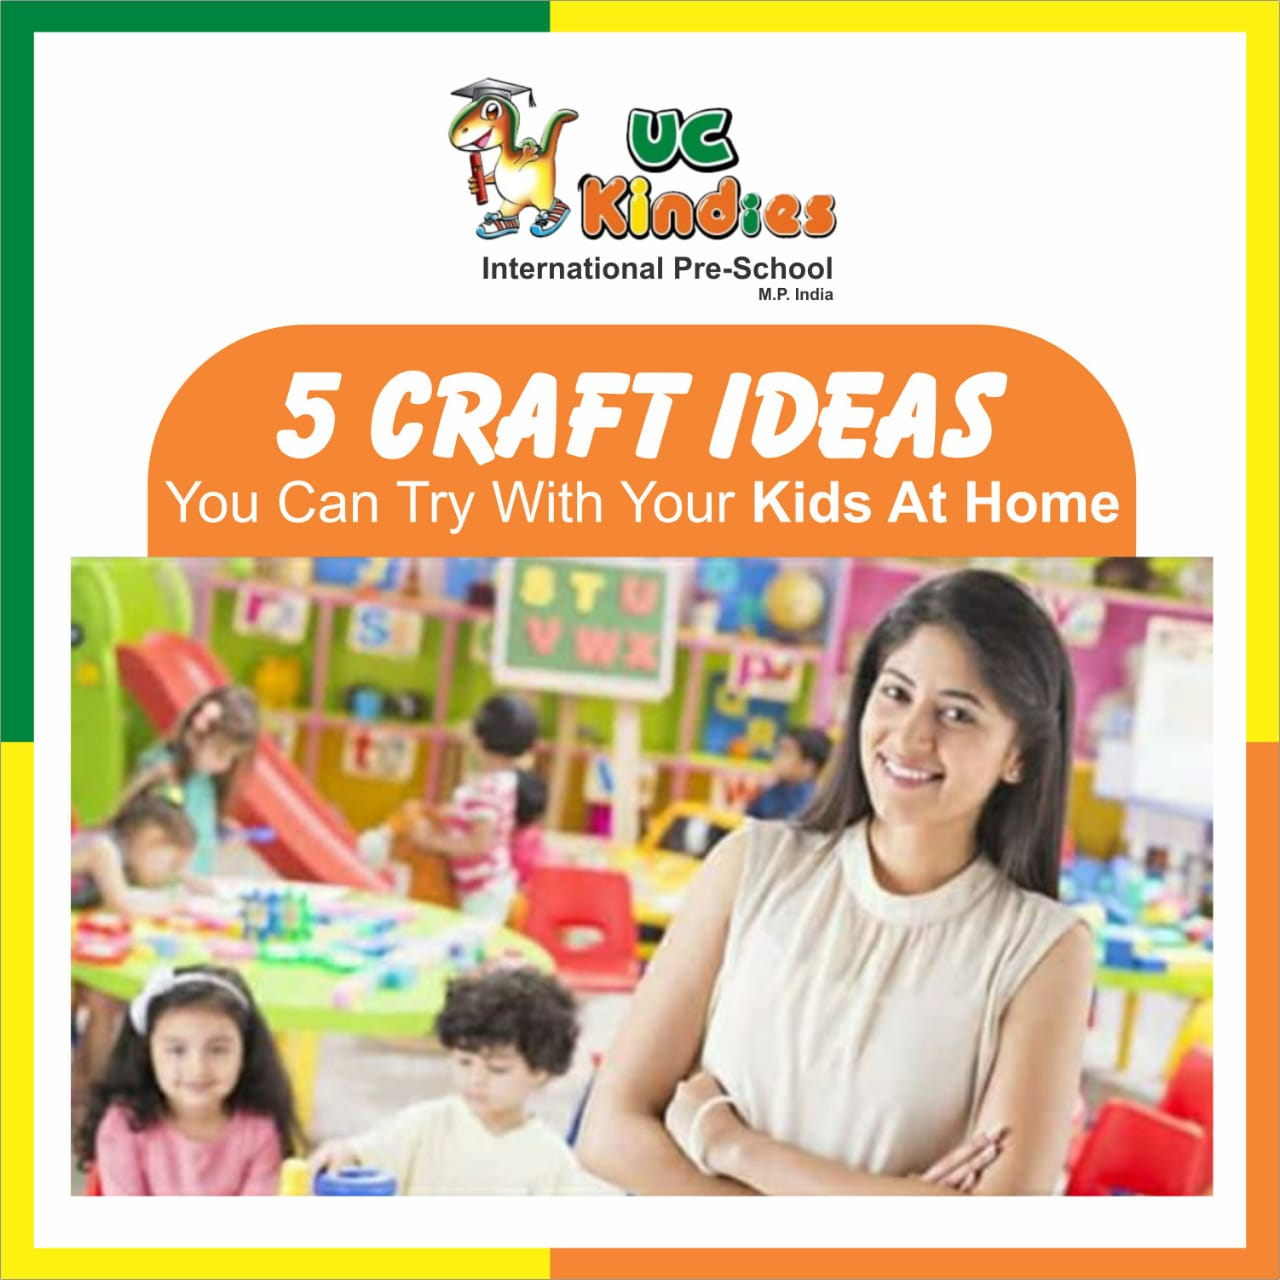 5 Craft Ideas You Can Try With Your Kids At Home